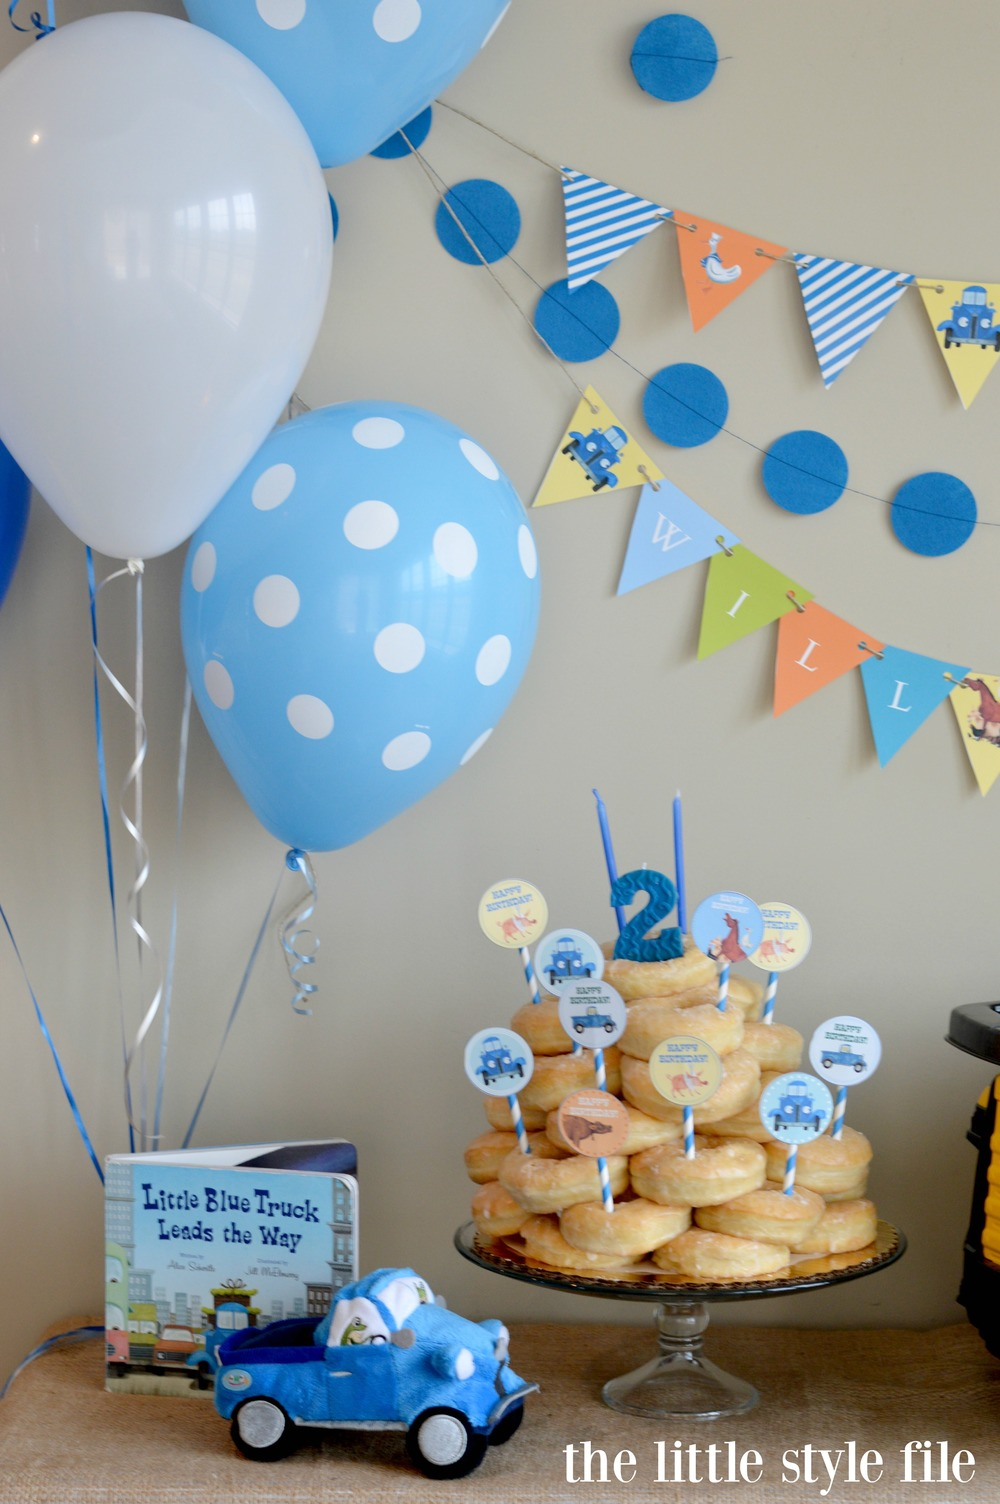 little blue truck birthday party cake.jpg